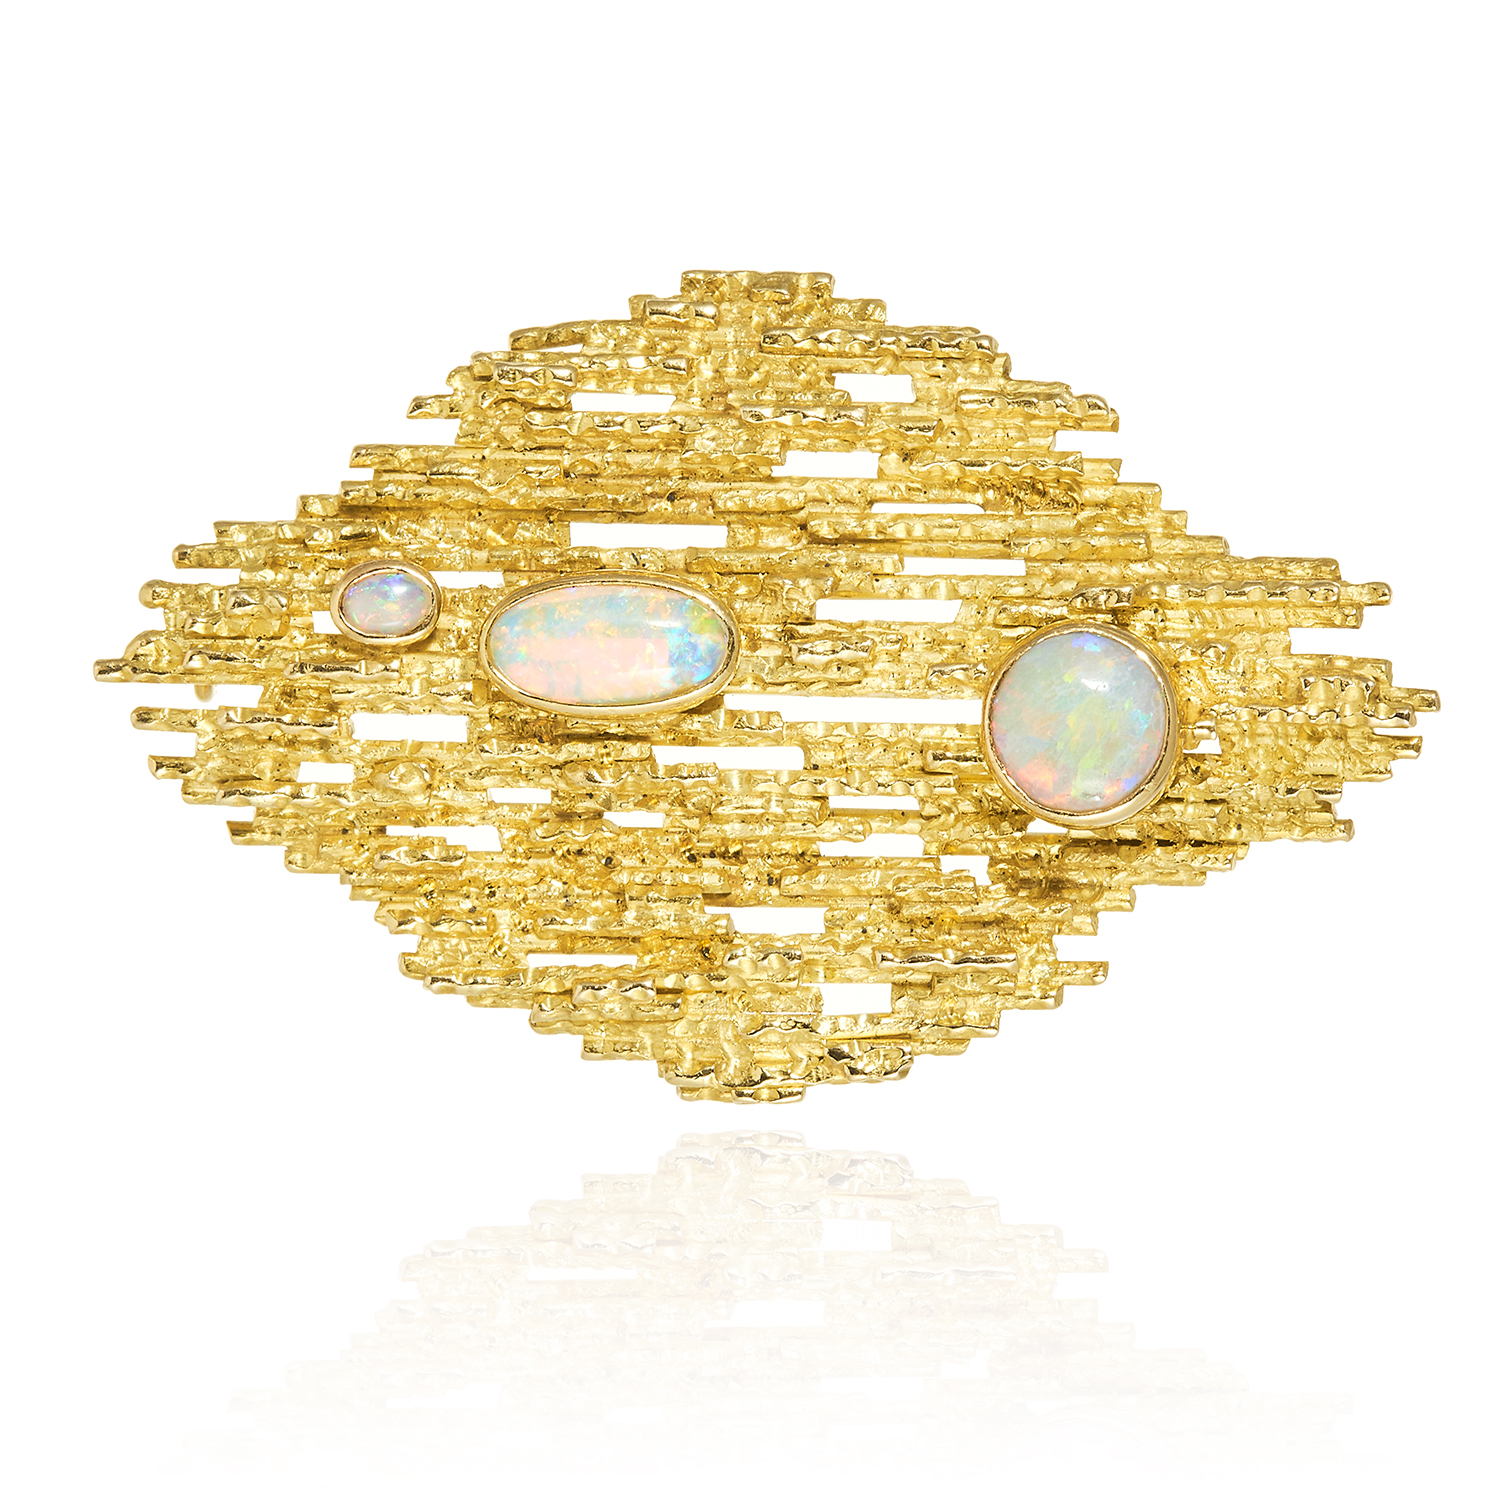 AN OPAL BROOCH / PENDANT, TIFFANY AND CO, CIRCA 1970 in 18ct yellow gold, in Brutalist style, the